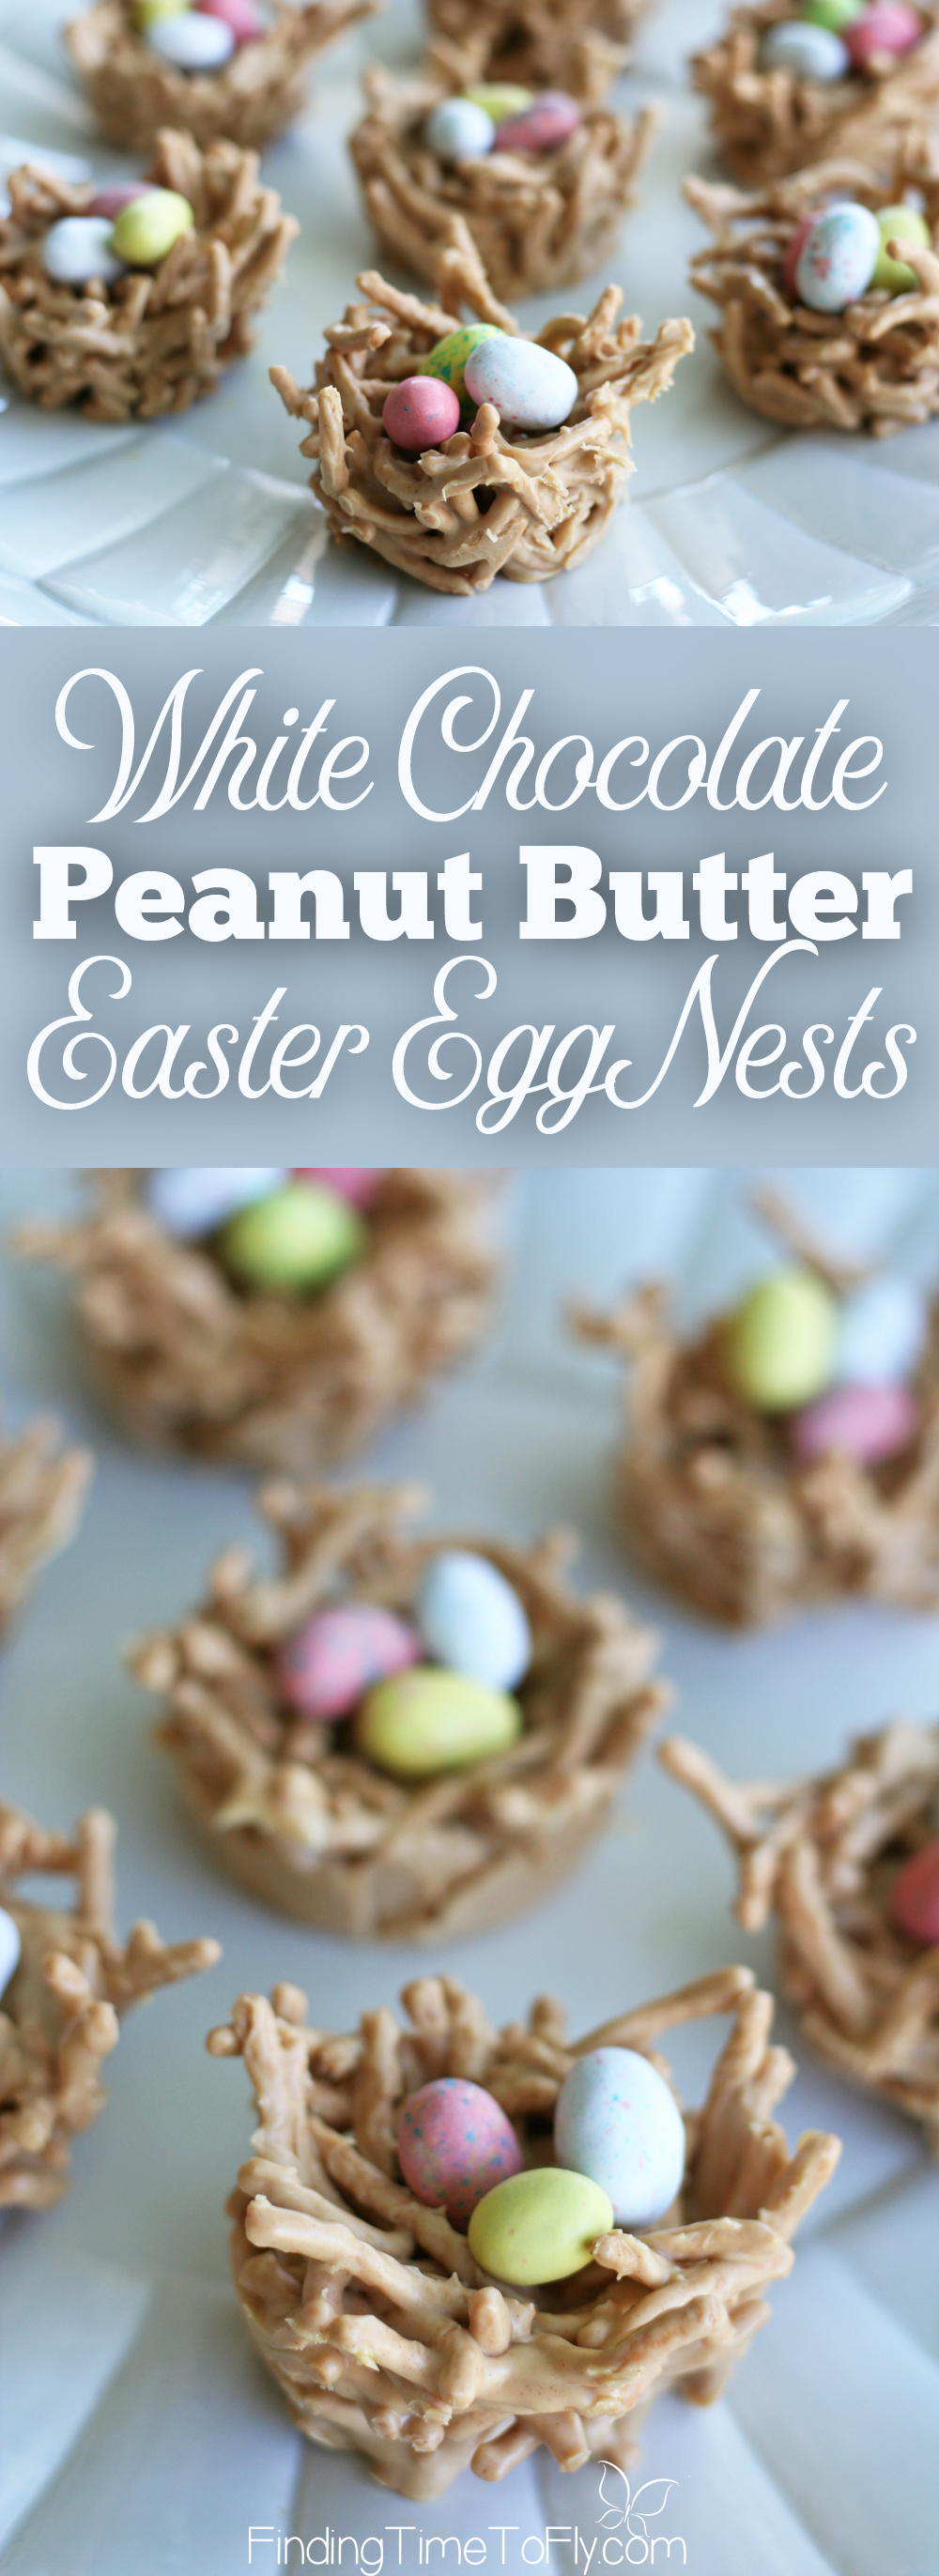 white chocolate peanut butter easter egg nests finding time to fly